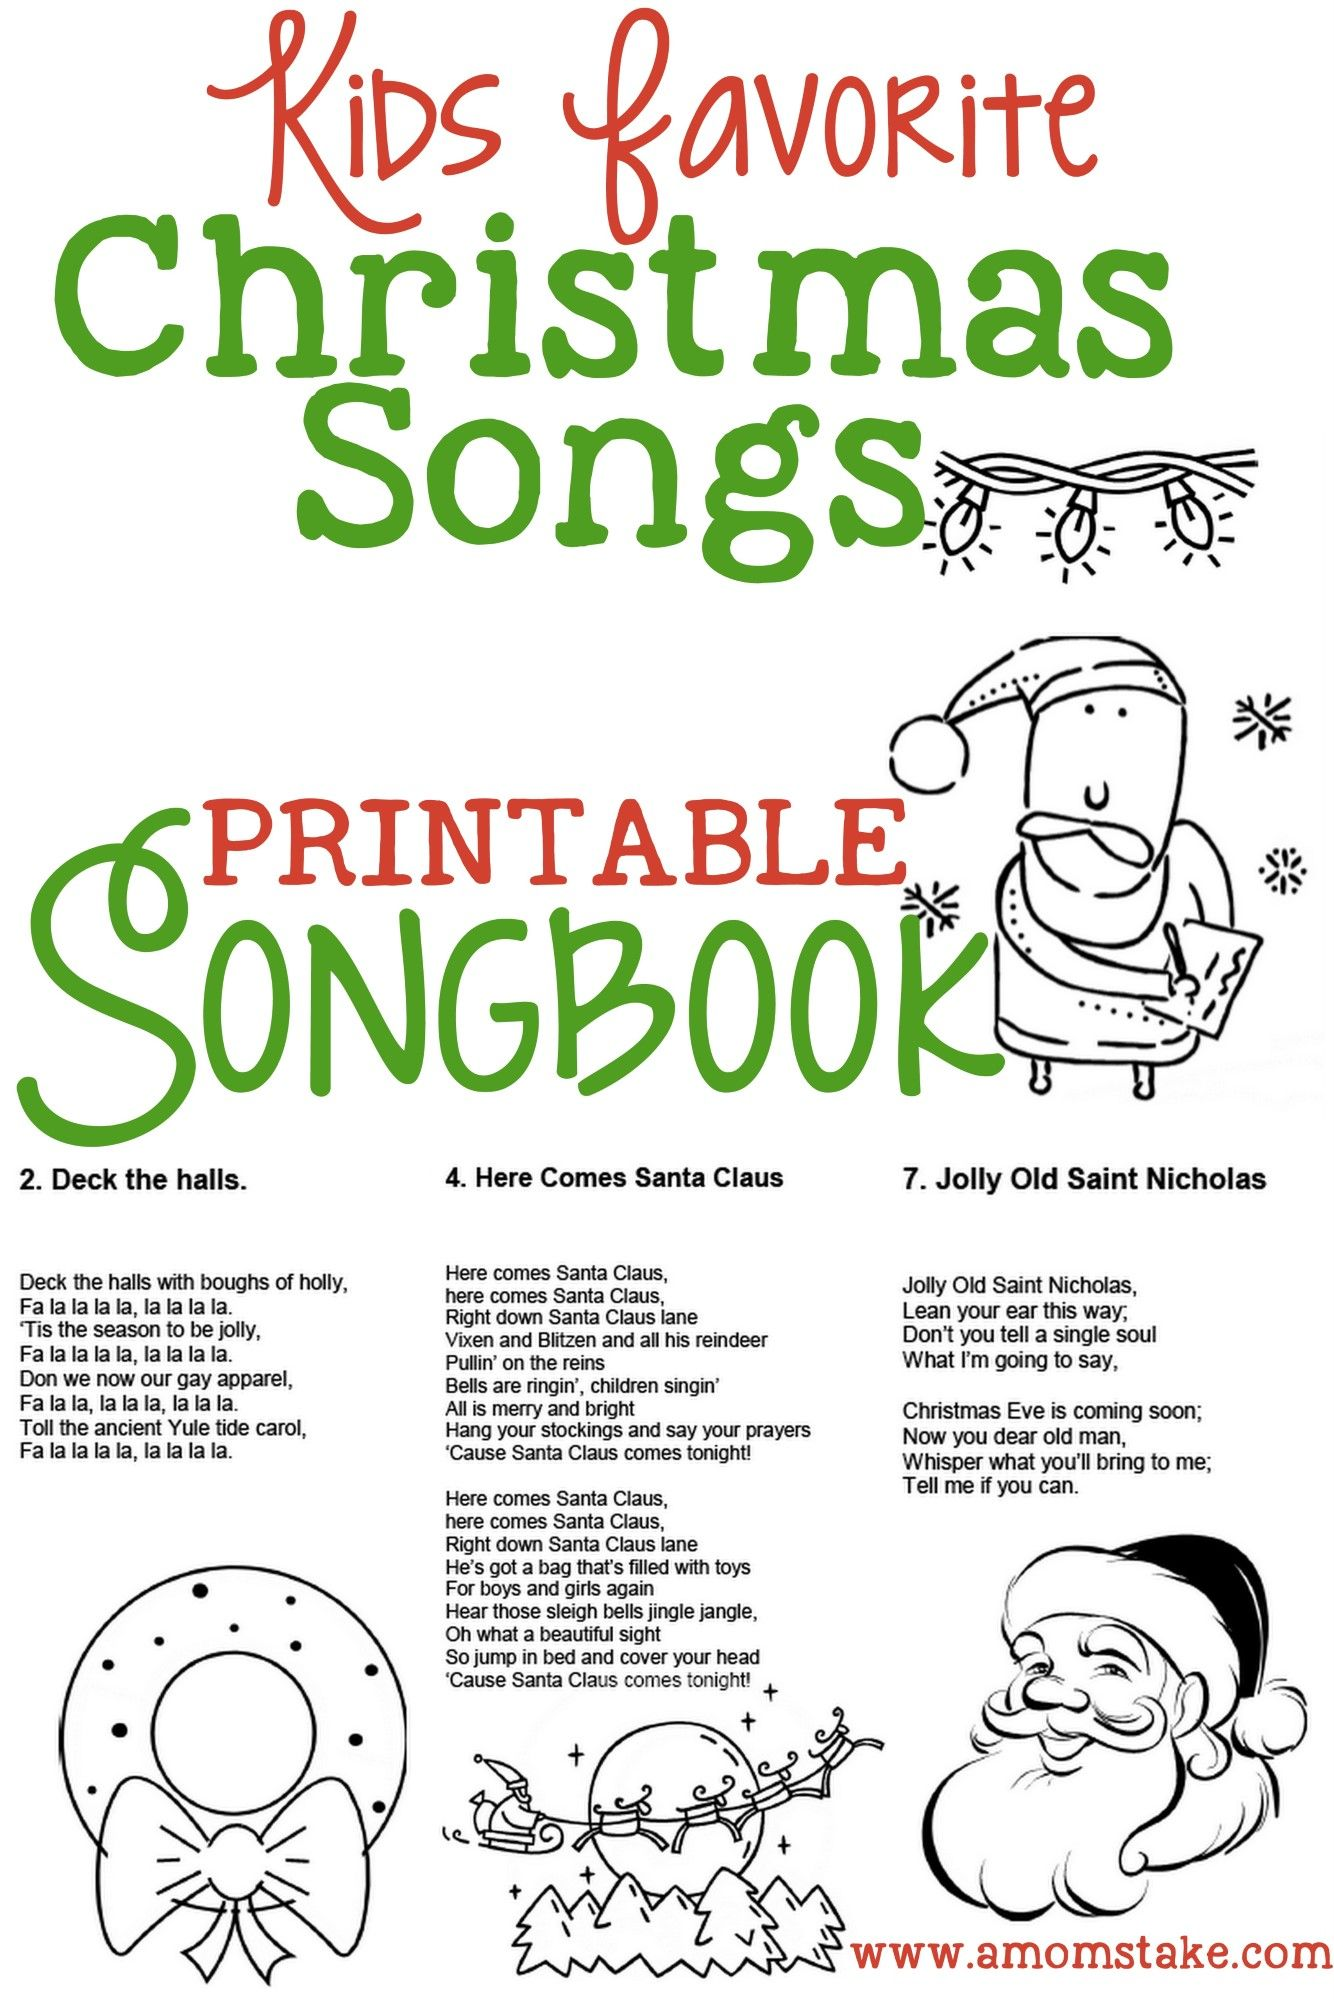 christmas songs for kids free printable songbook a coloring book and songbook in one